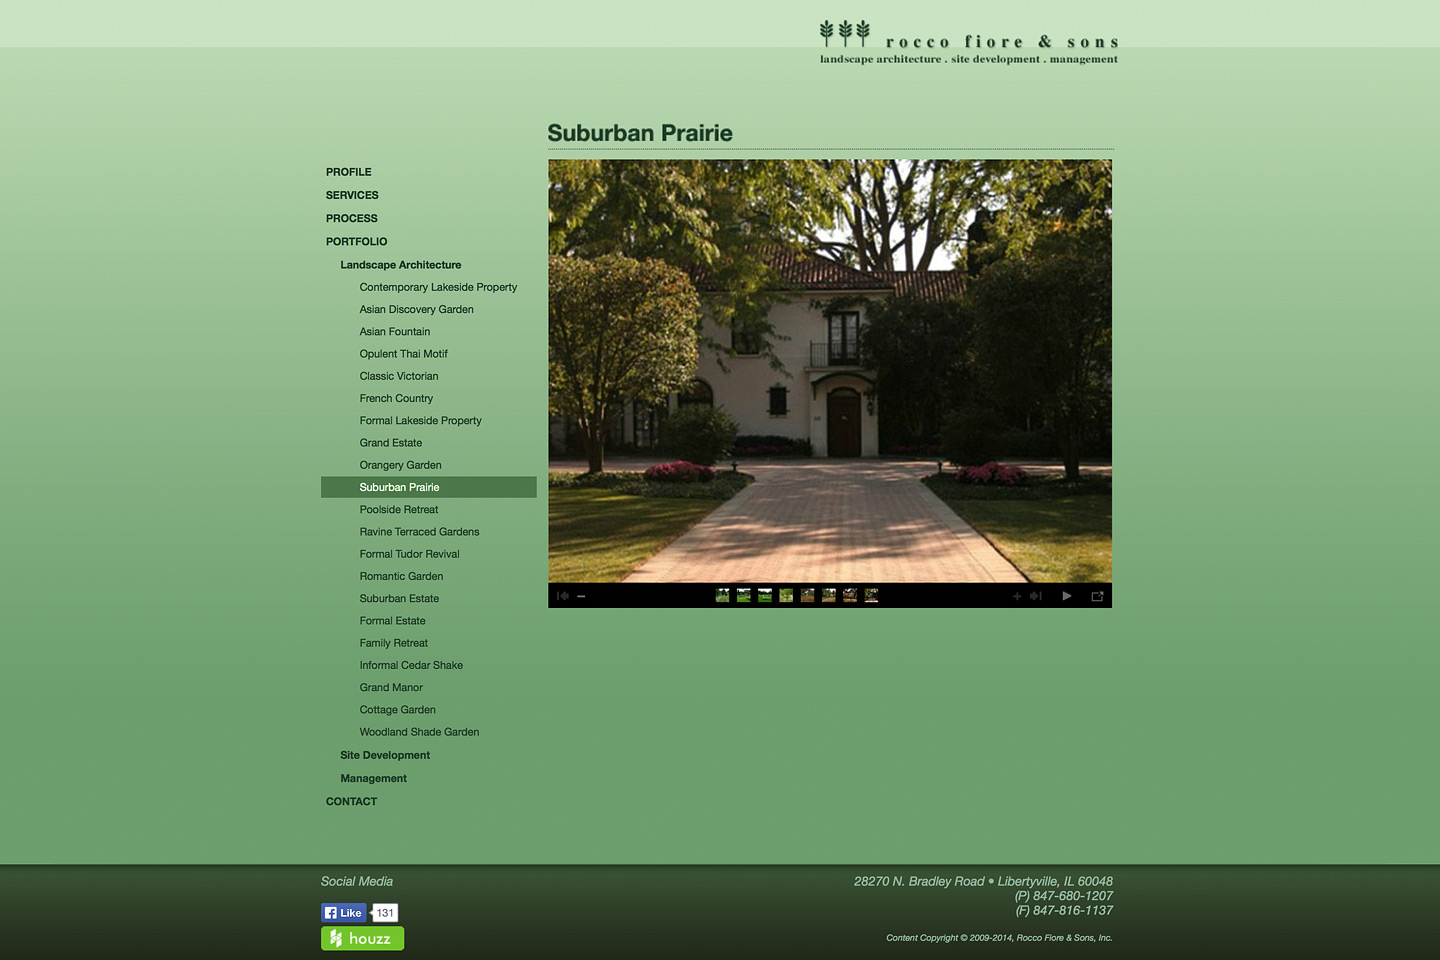 a screen capture of a rocco fiore & sons web photo gallery designed by 4d, inc, featuring a project called suburban prairie